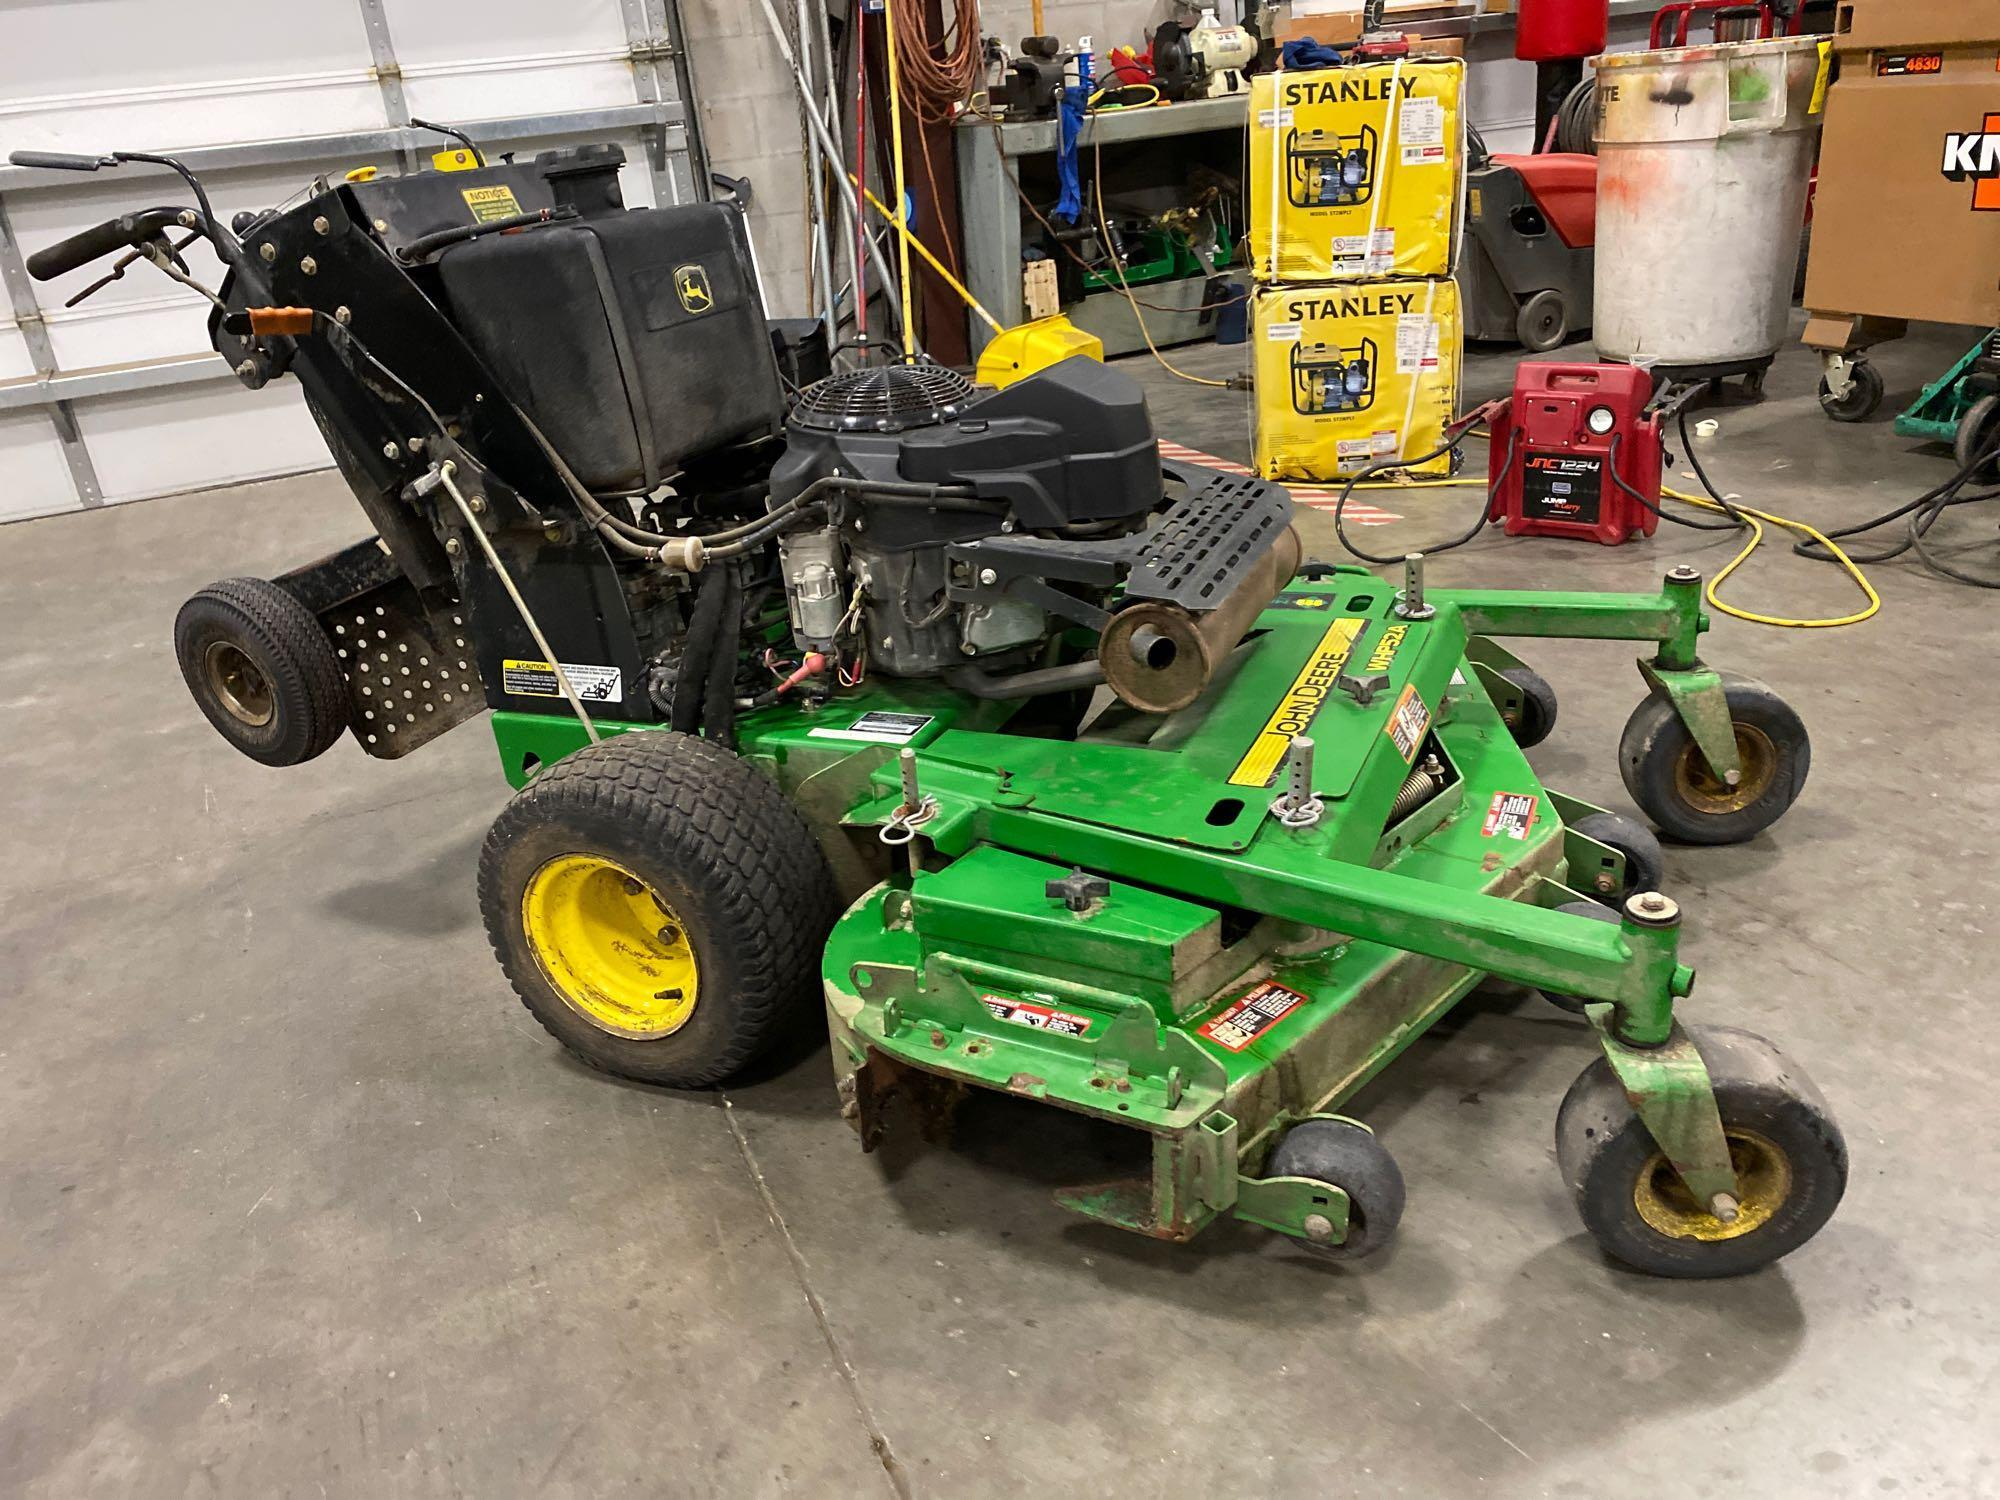 """JOHN DEERE WHP52A MOWER, 52"""" DECK, RUNS AND OPERATES - Image 5 of 7"""